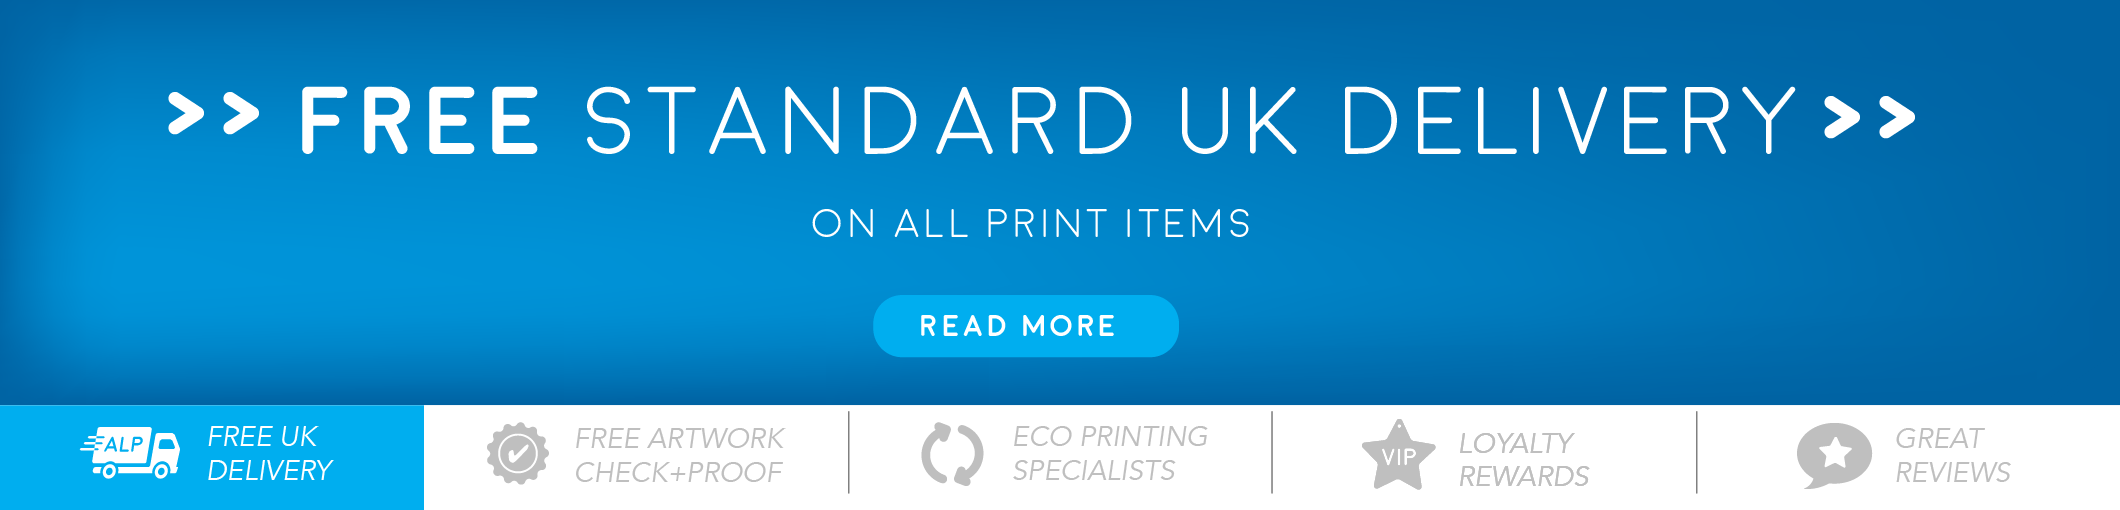 Free UK standard delivery on all print orders